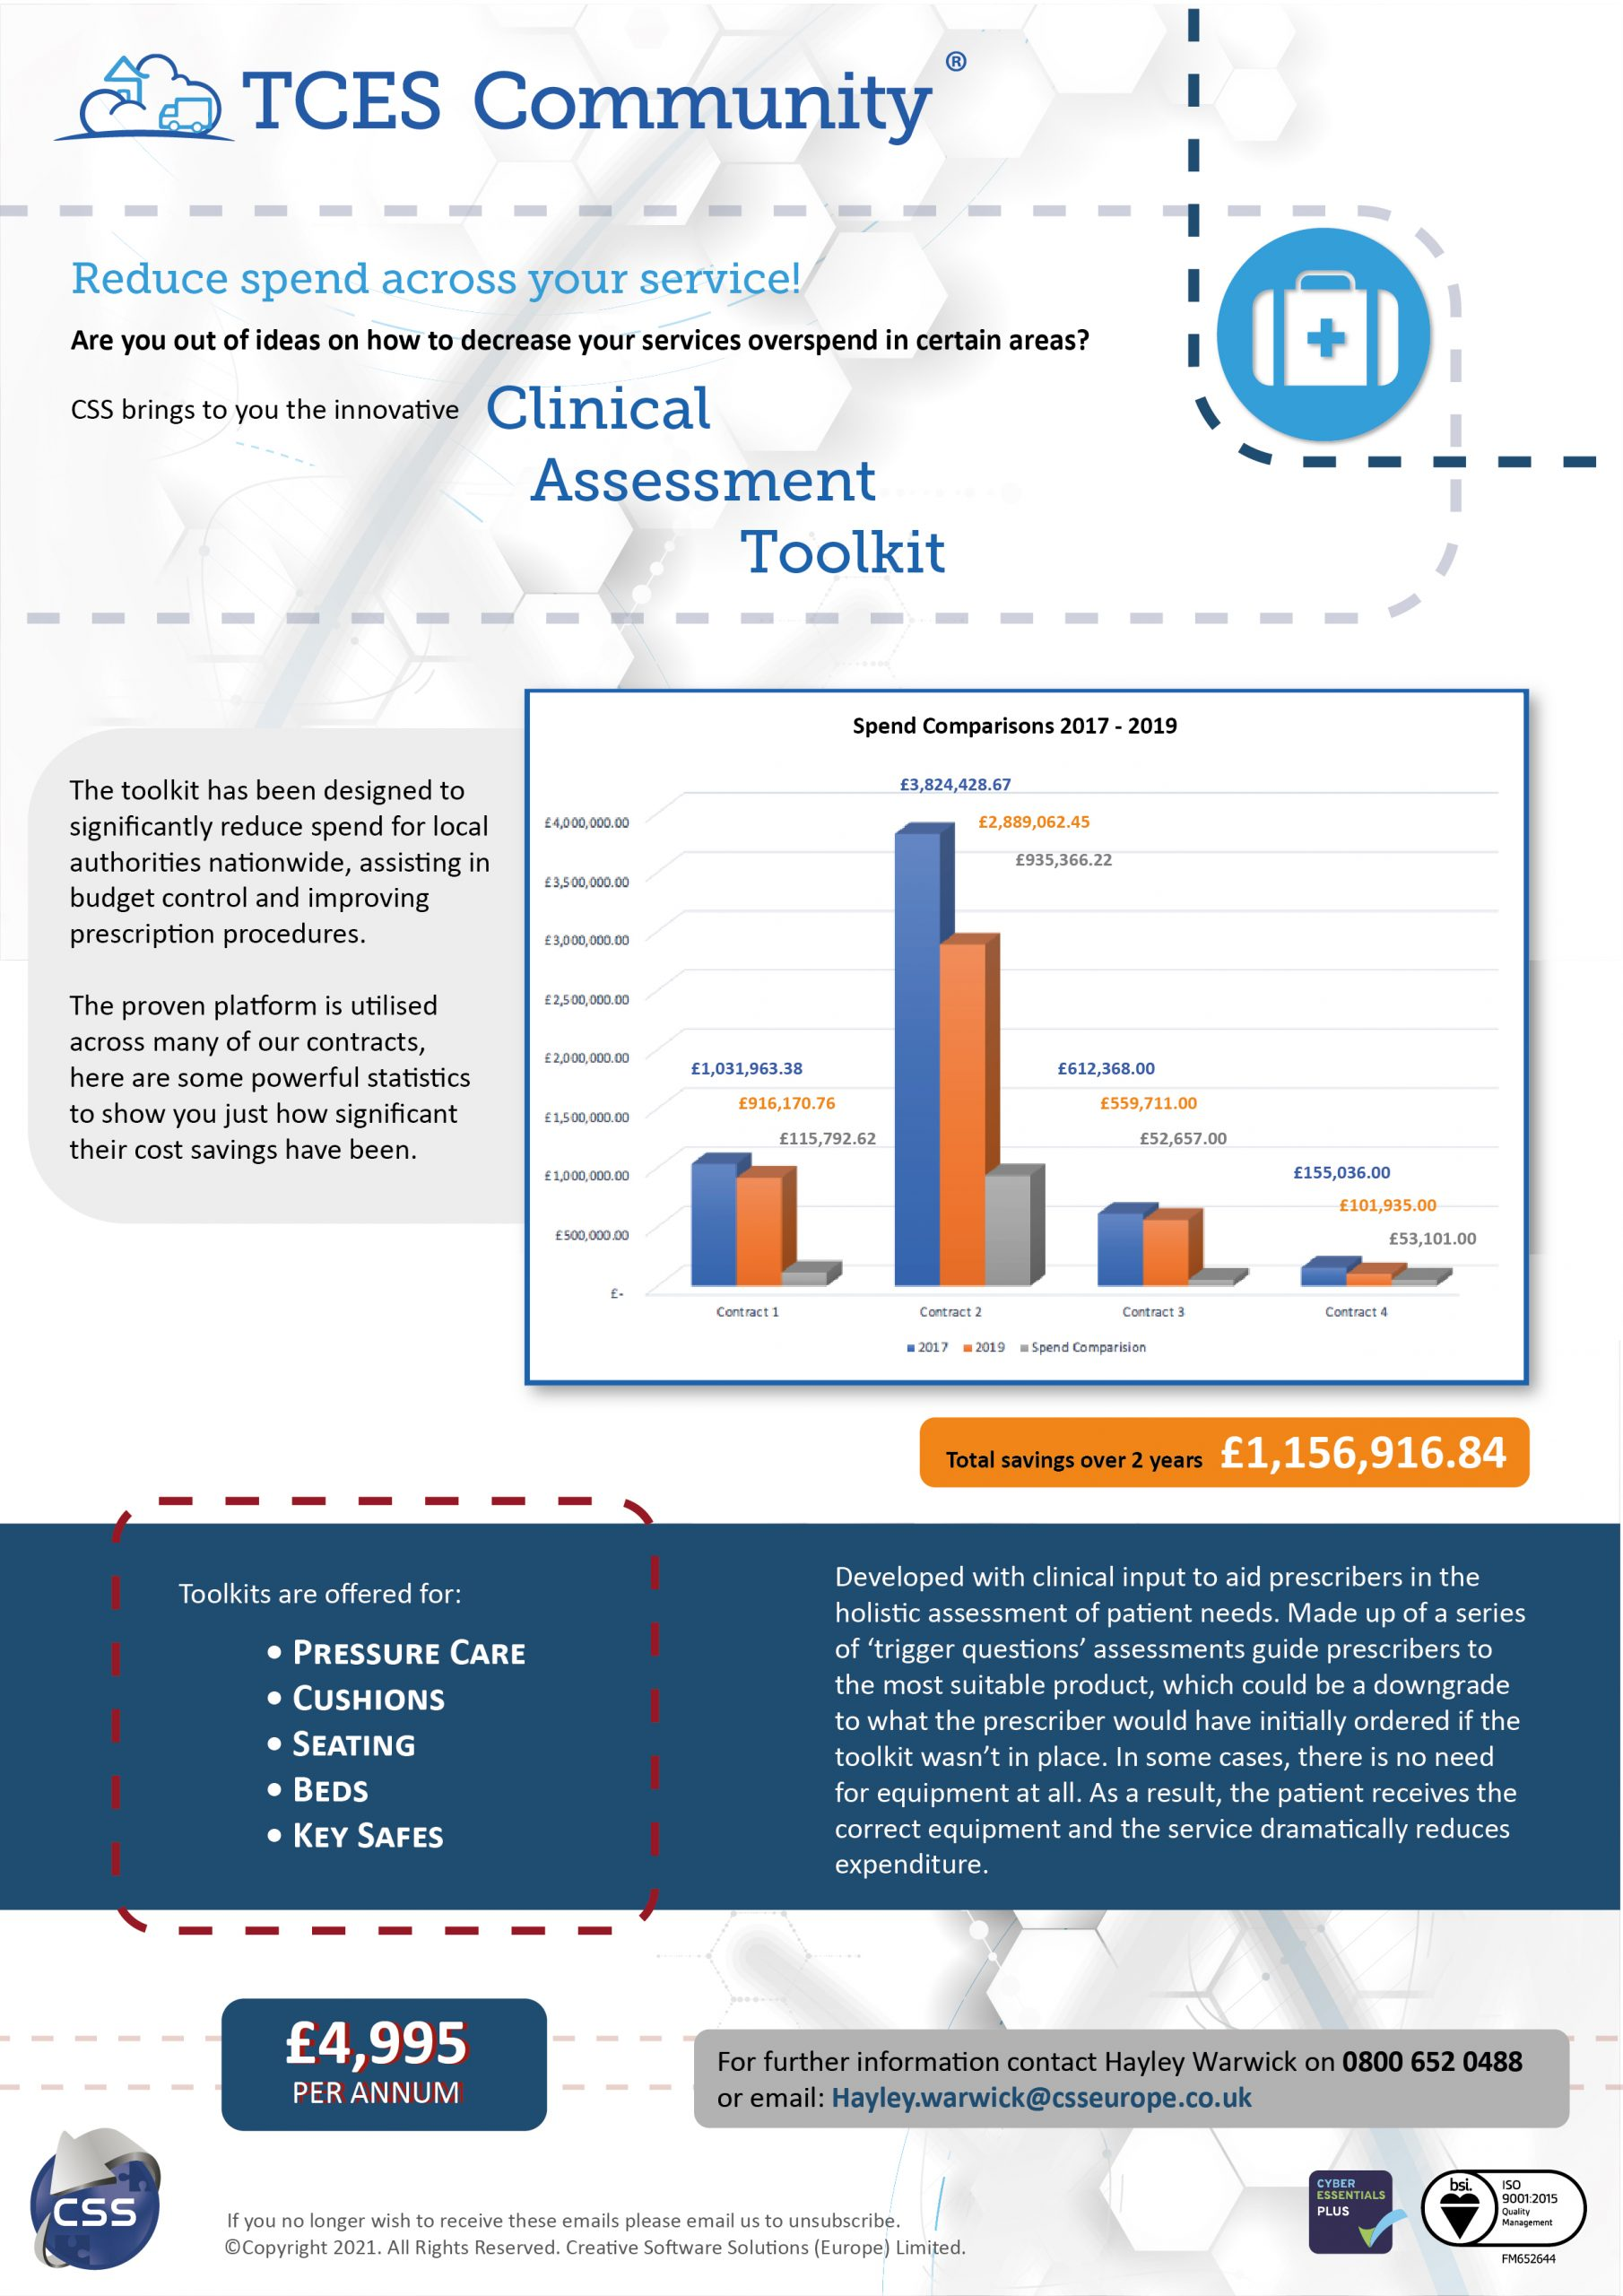 Clinical Assessment Toolkit flyer